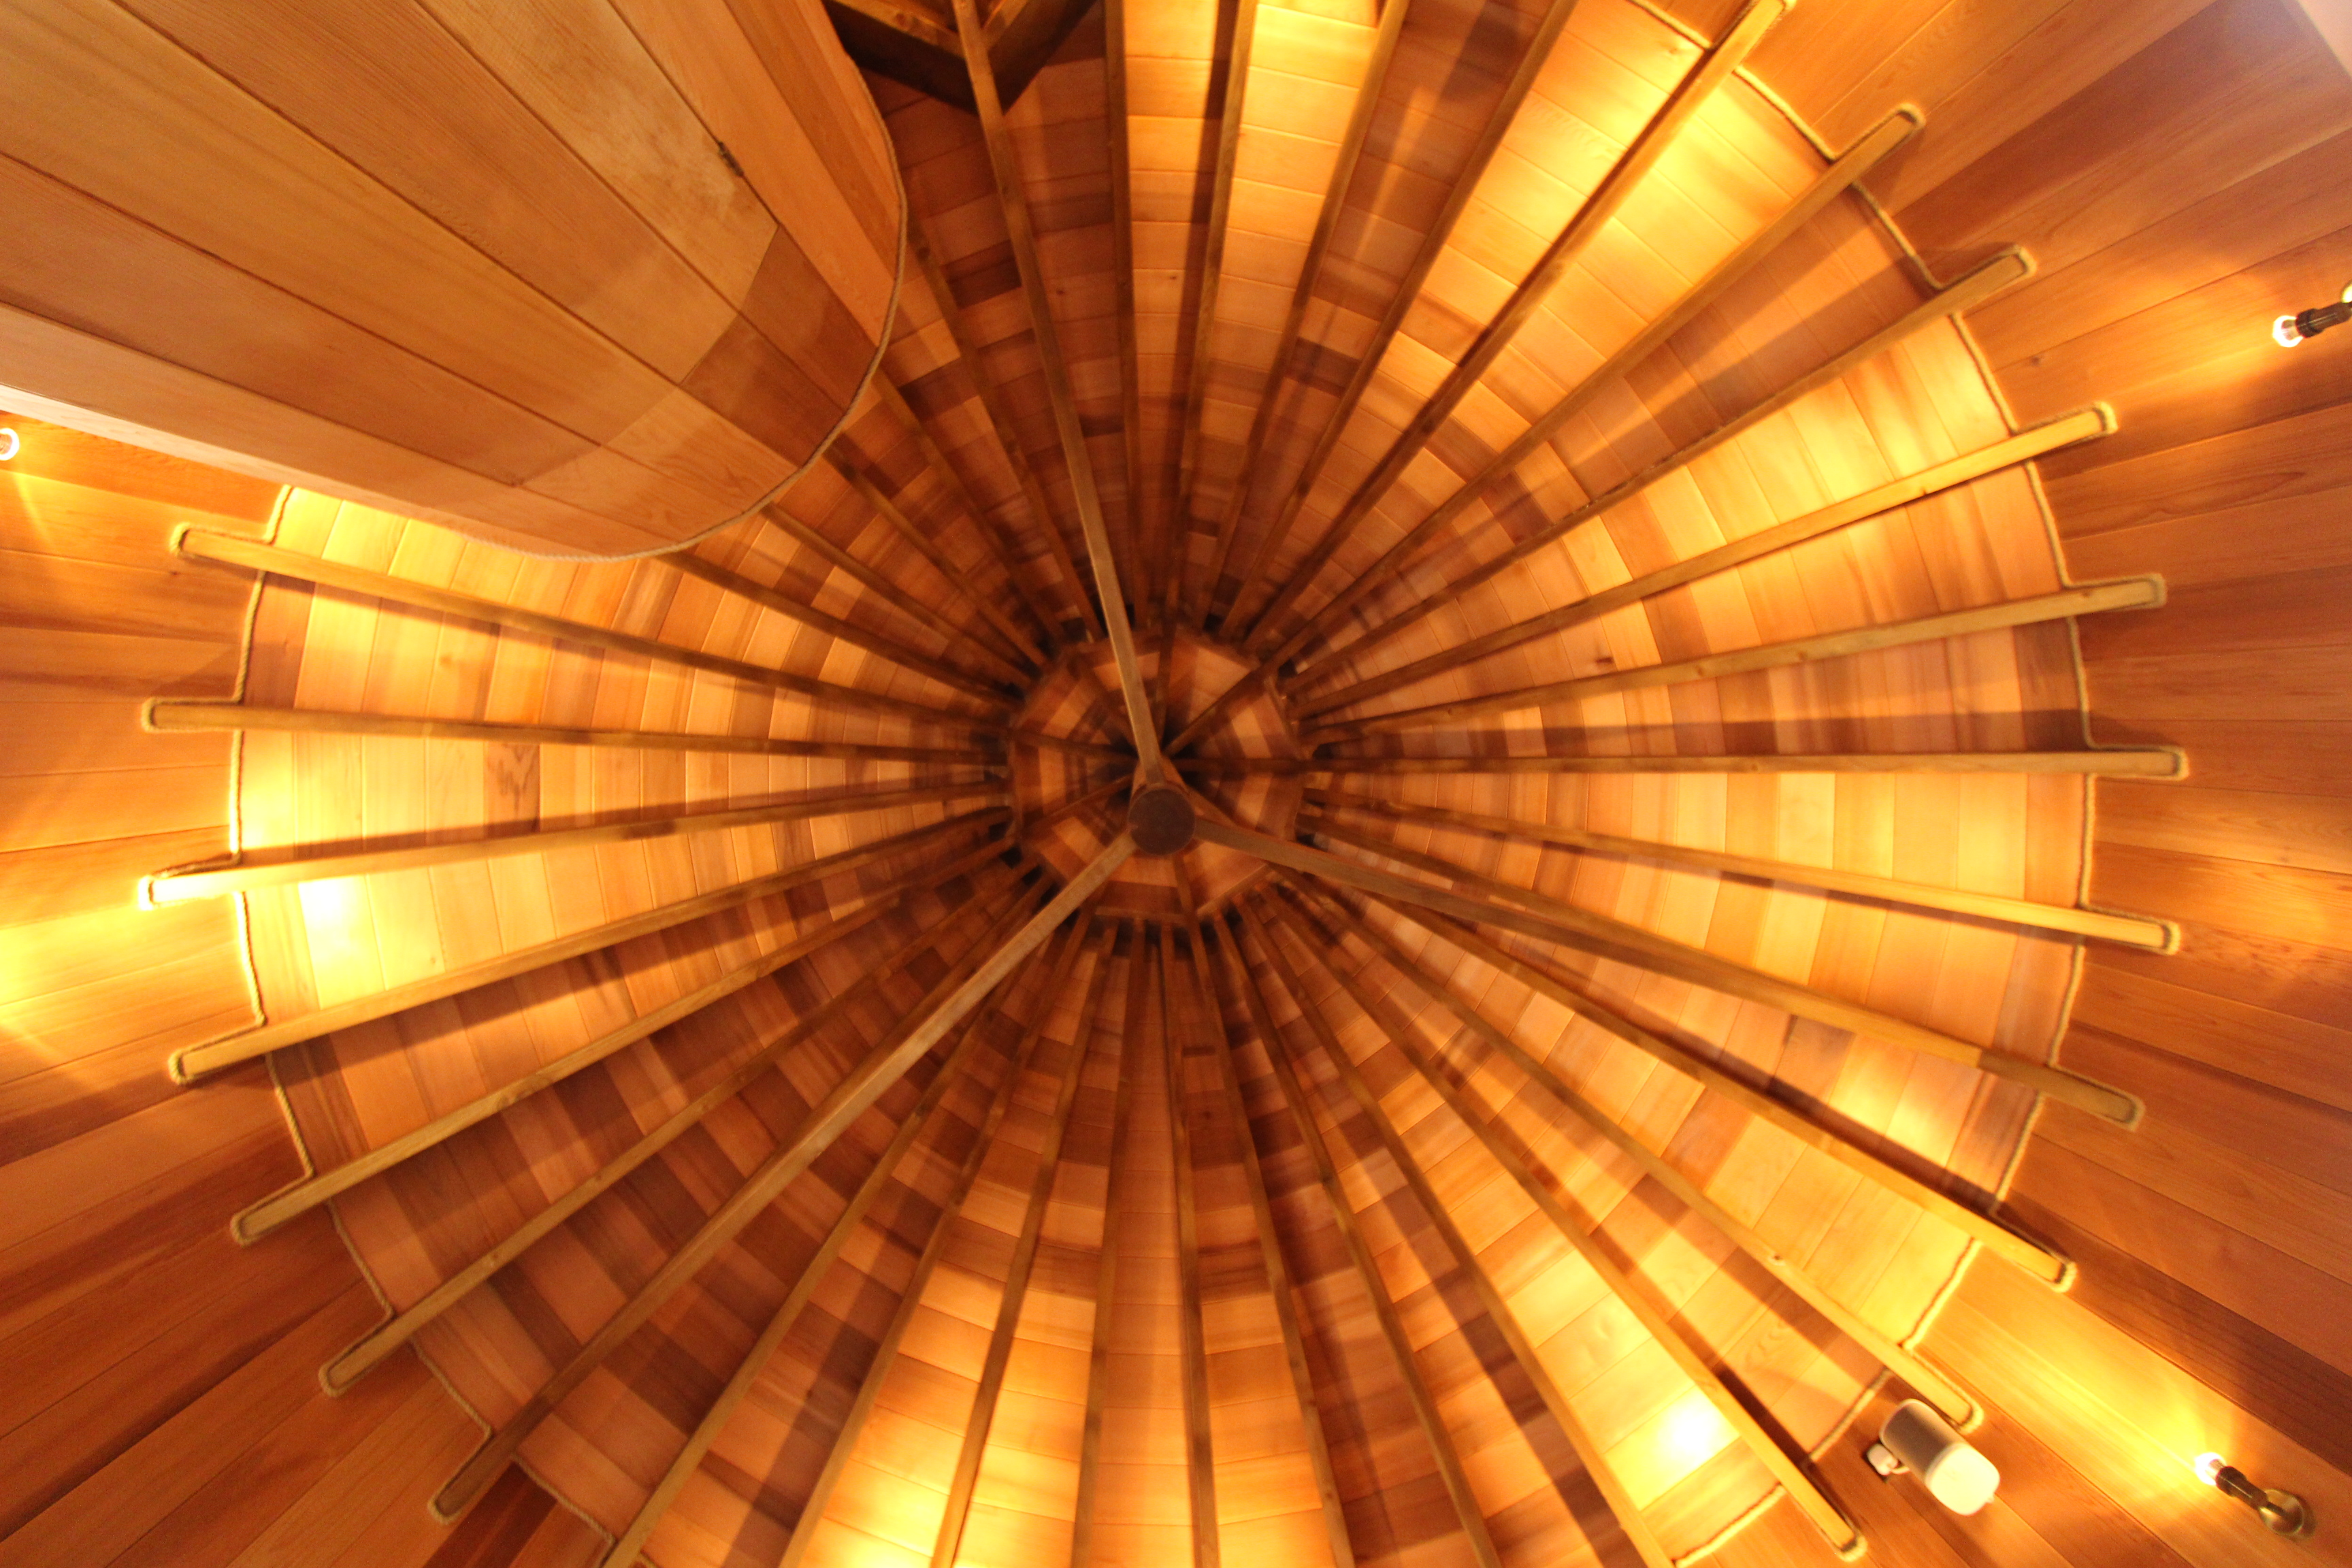 The ceilings of each turret have exposed beams and intersecting angles. From the inside, this creates space. From the outside, it gives the building its conical shape.